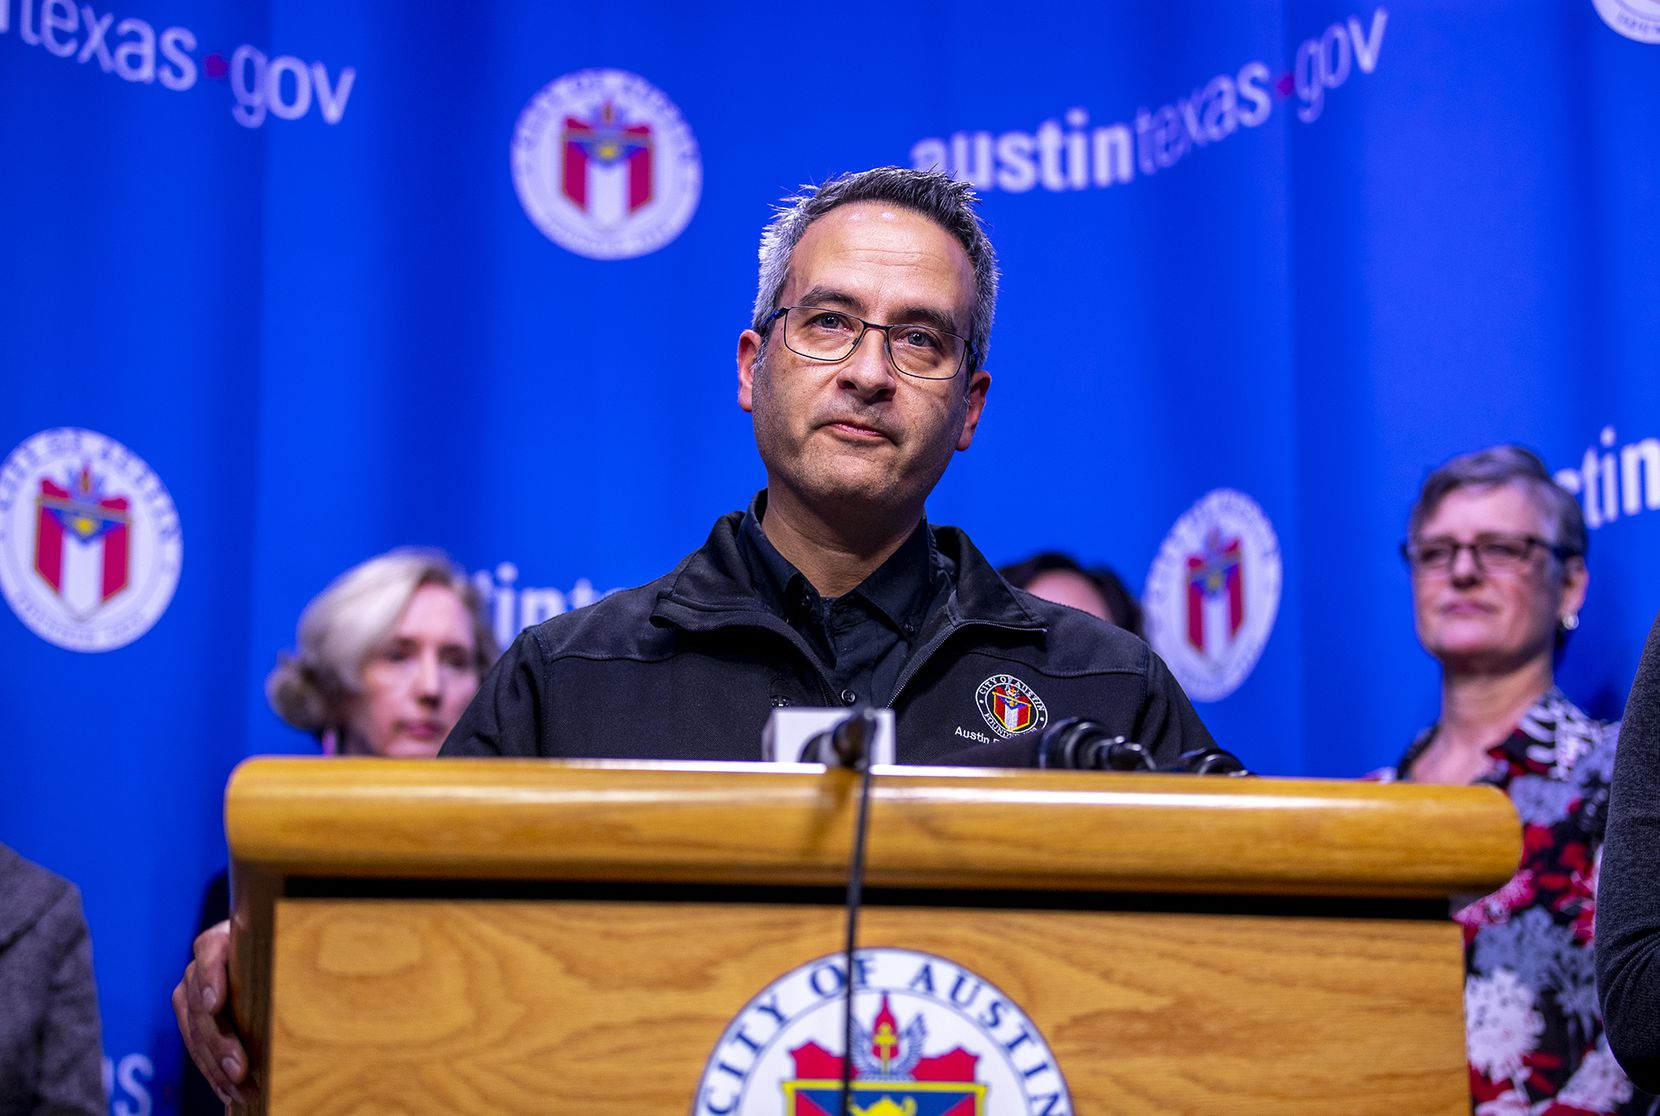 Dr. Mark Escott, Austin Public Health Interim Health Authority, provided an update to the community about COVID-19 during a press conference in Austin, Texas on Friday, March 6, 2020.